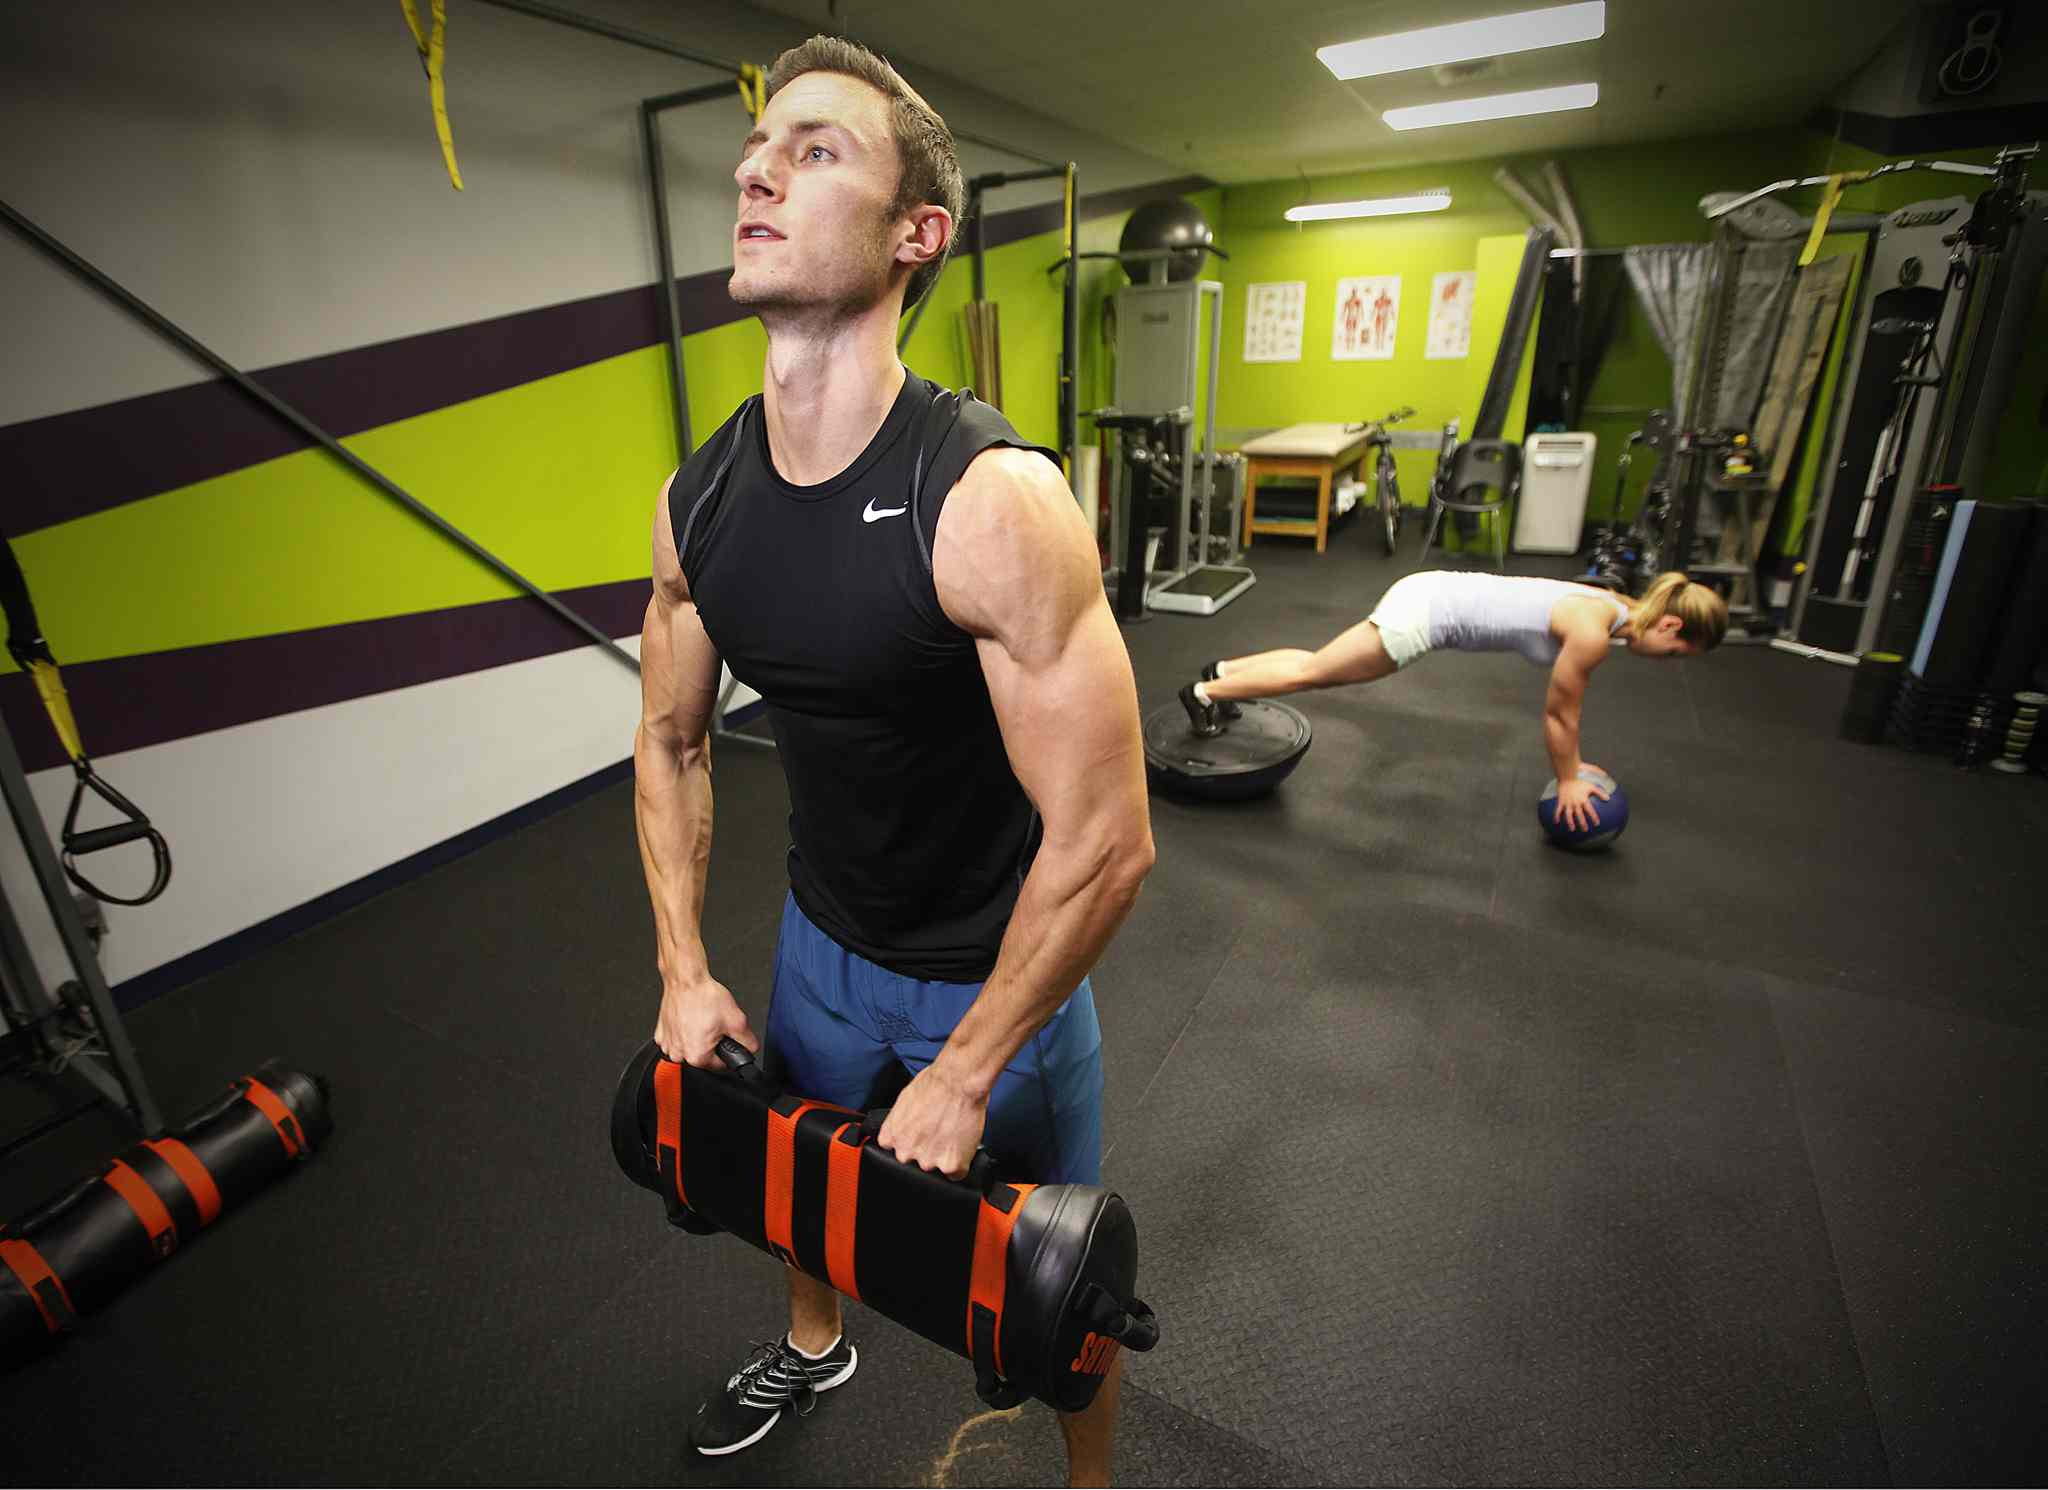 Mikhail Gerylo, who is 44th world ranked obstacle course racer, trains at Serratus Fitness the night before leaving for the world championships in Cincinnati this coming weekend.